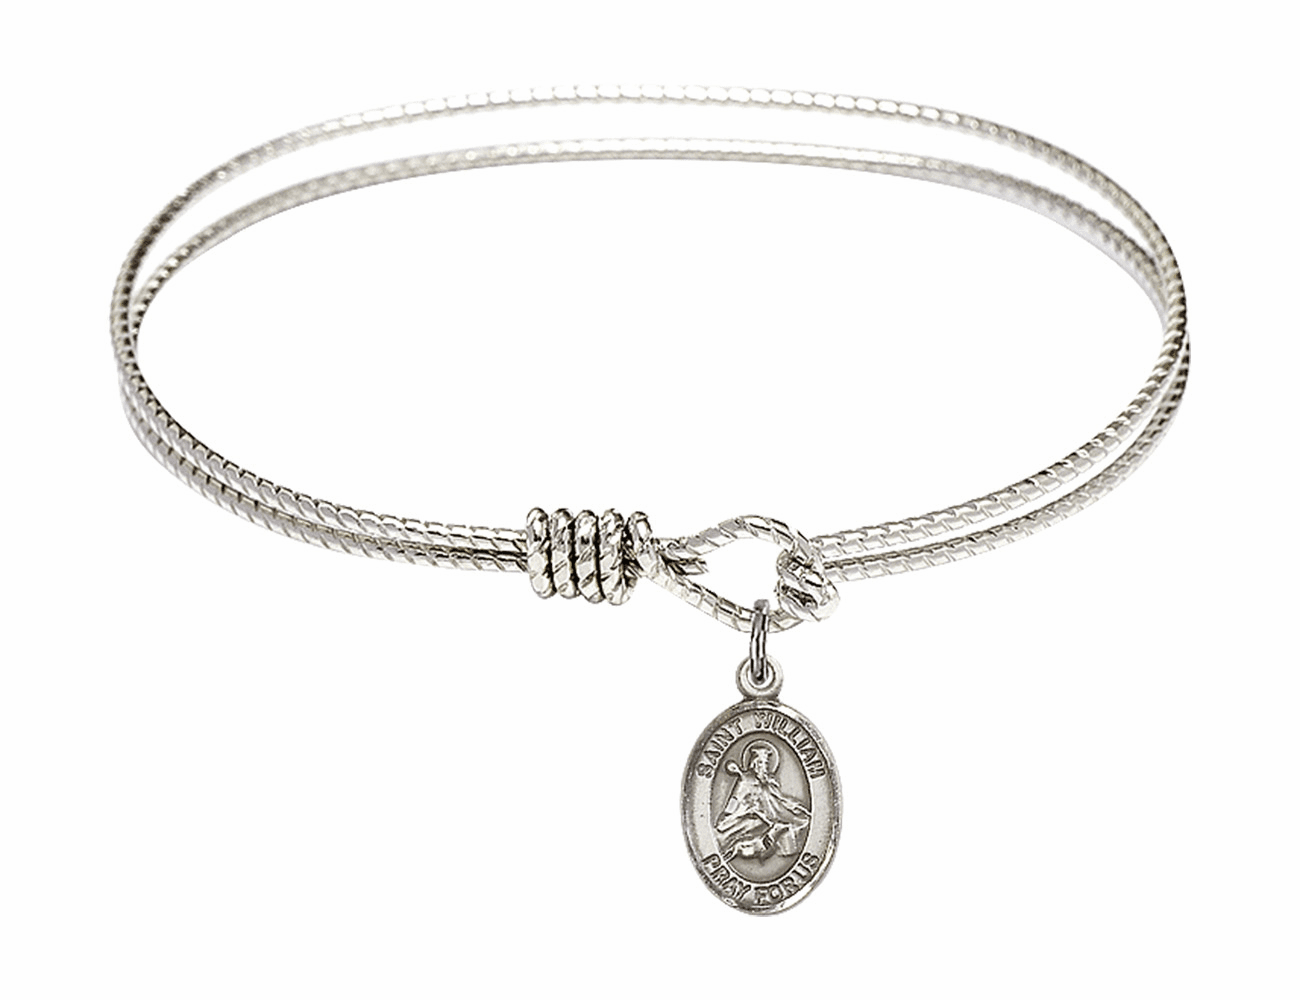 St William of Rochester Textured Bangle w/Sterling Charm Bracelet by Bliss